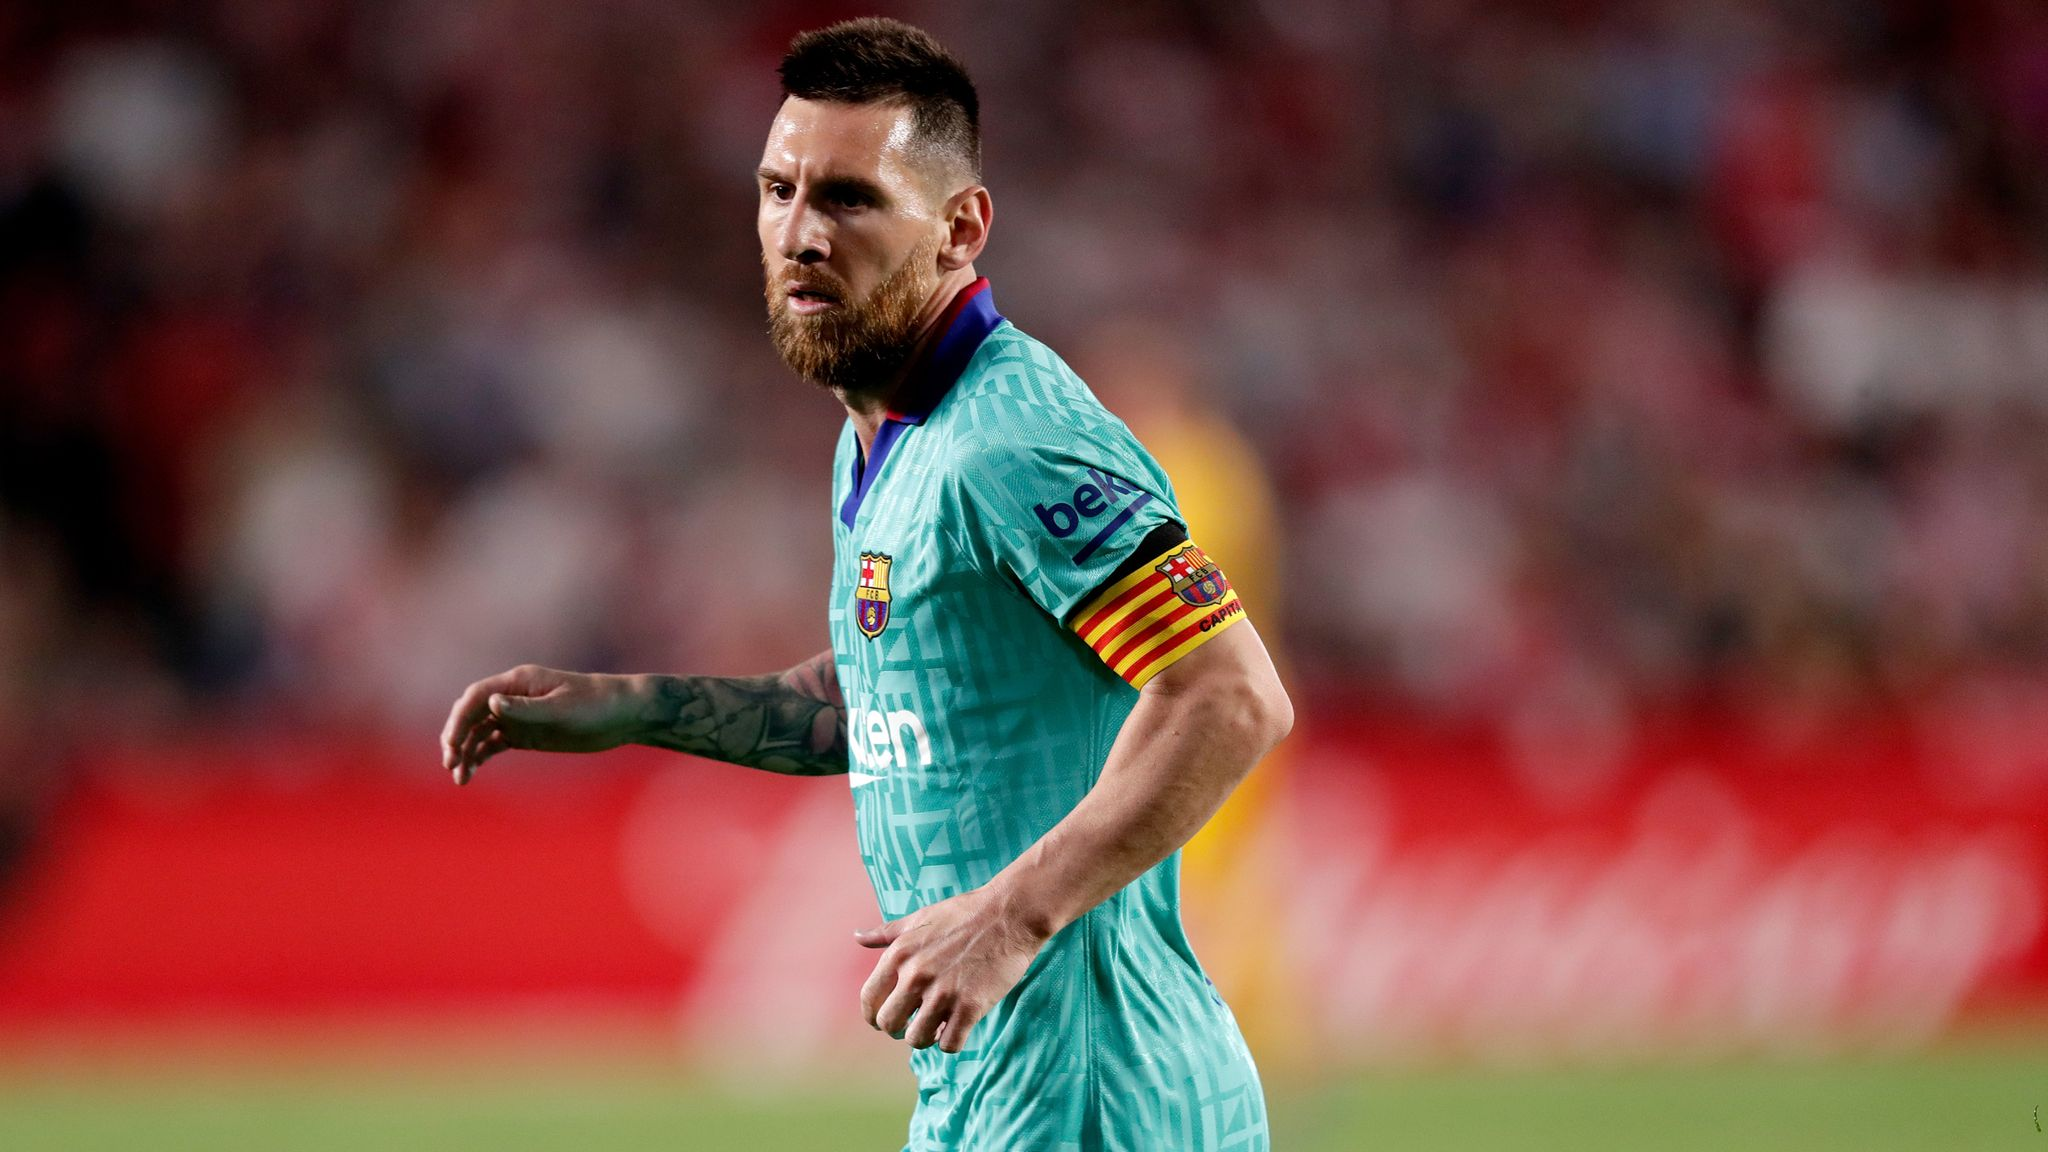 Lionel Messi will stay at Barcelona for another five years, insists president Josep Maria Bartomeu